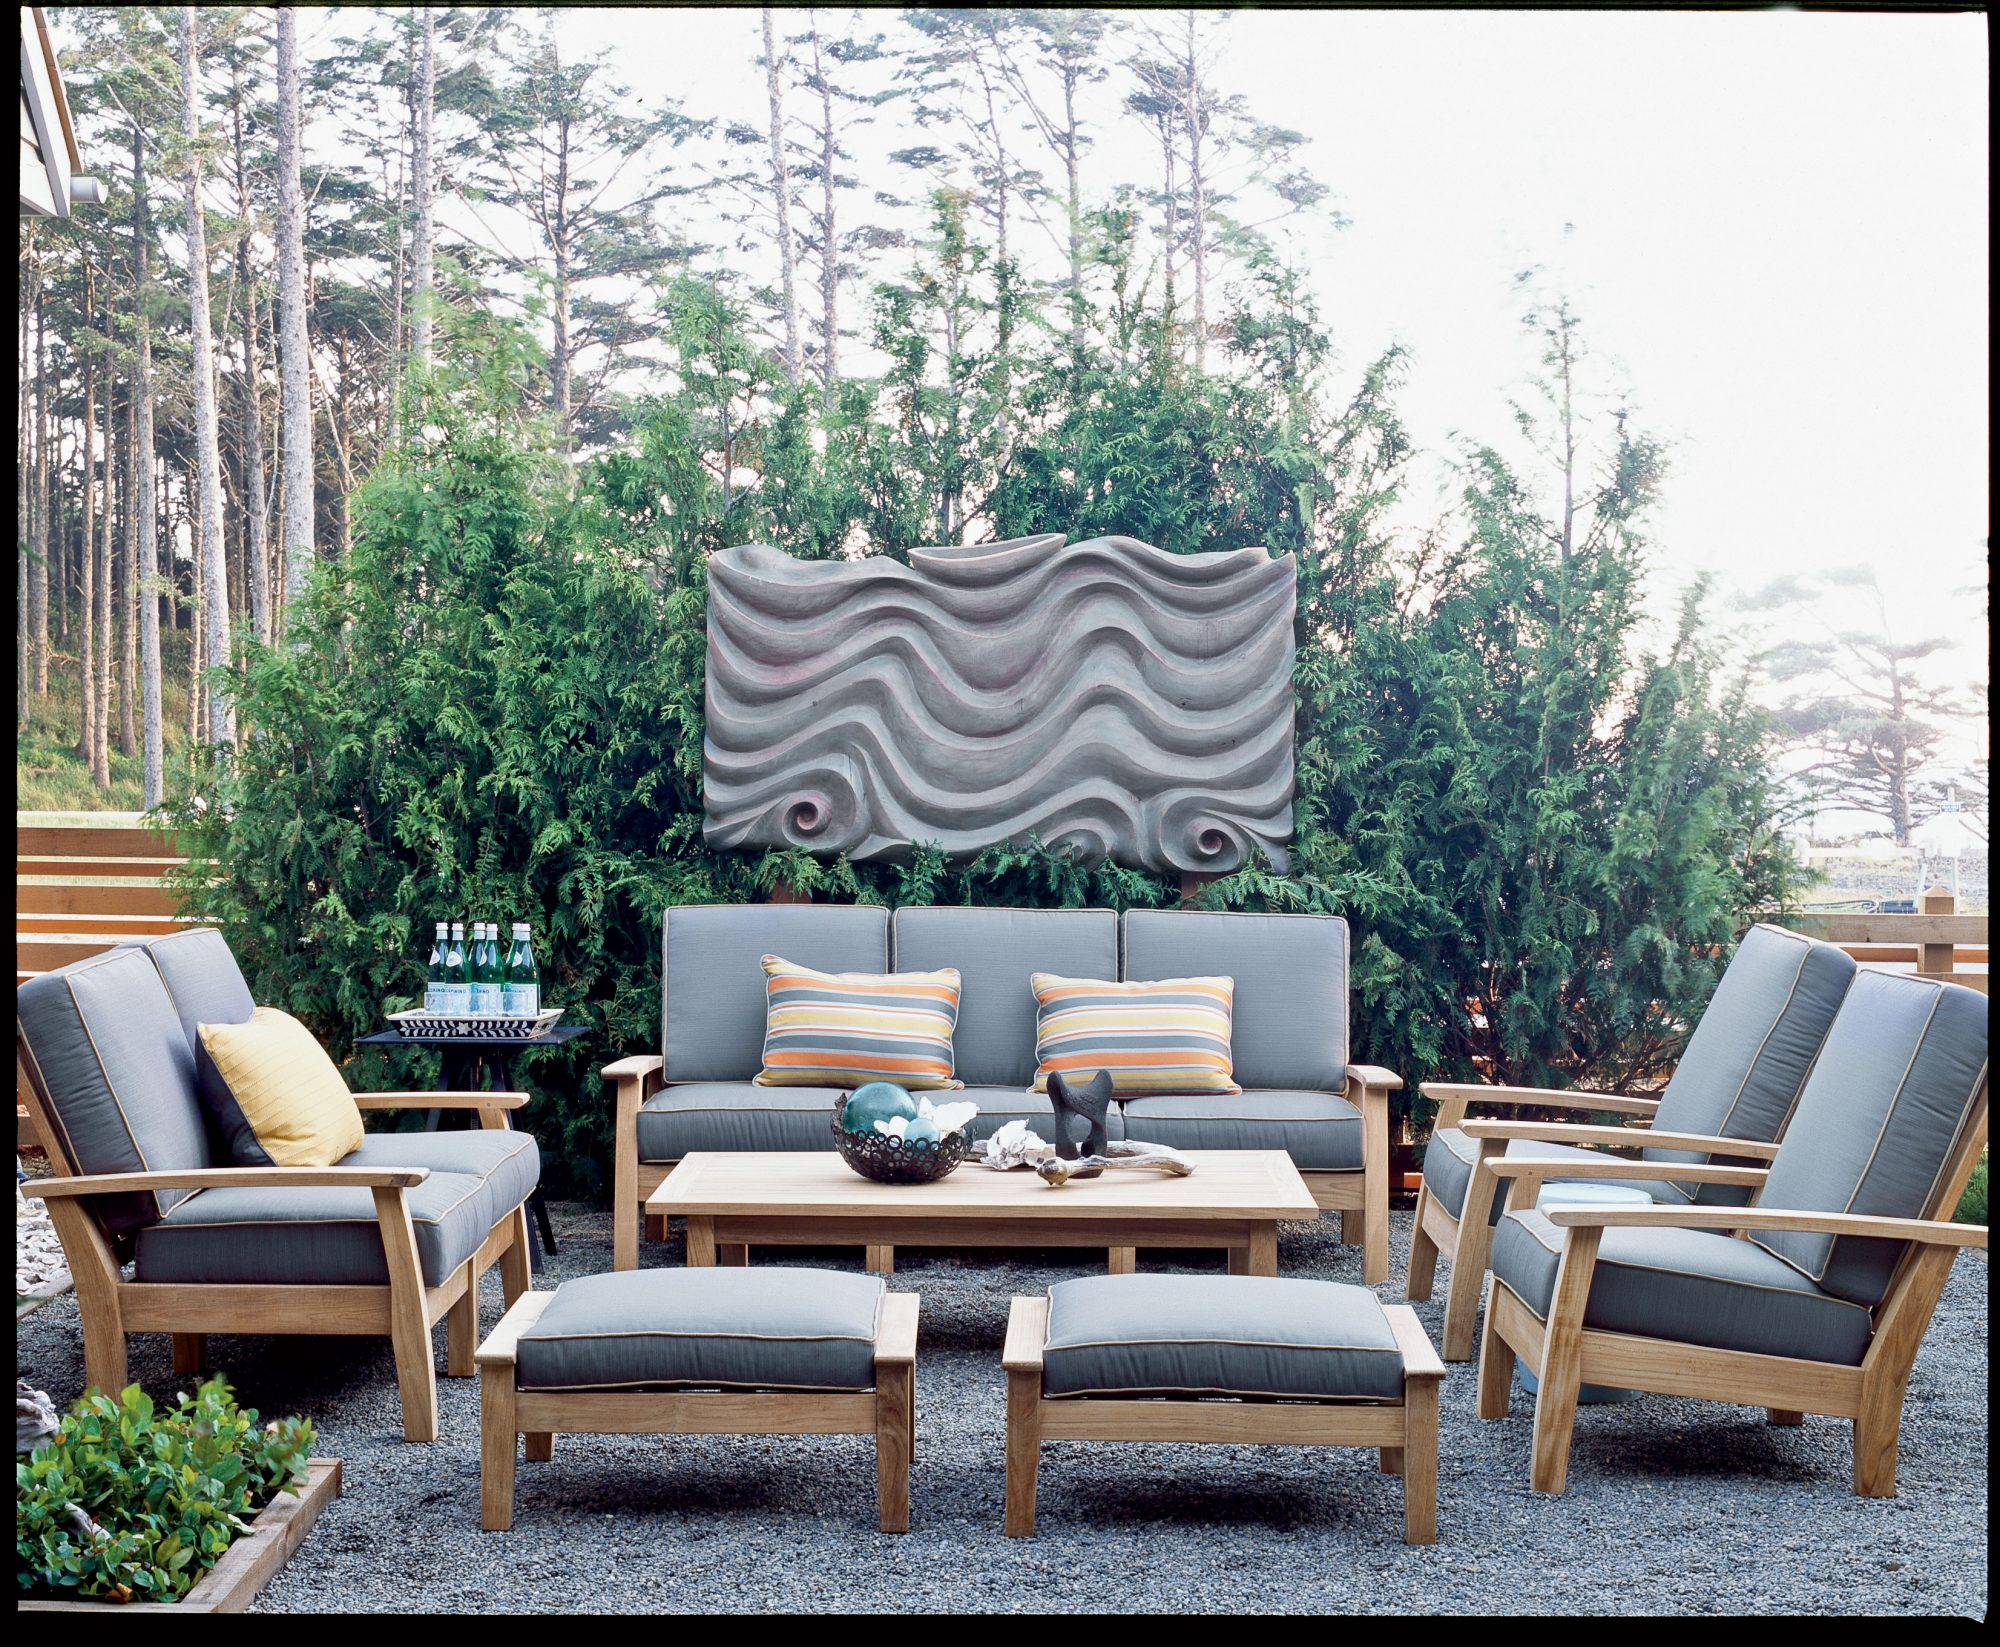 Pea gravel creates the illusion of an area rug on this modern patio. A dramatic sculpture creates a focal point and lends interest to this outdoor living room.